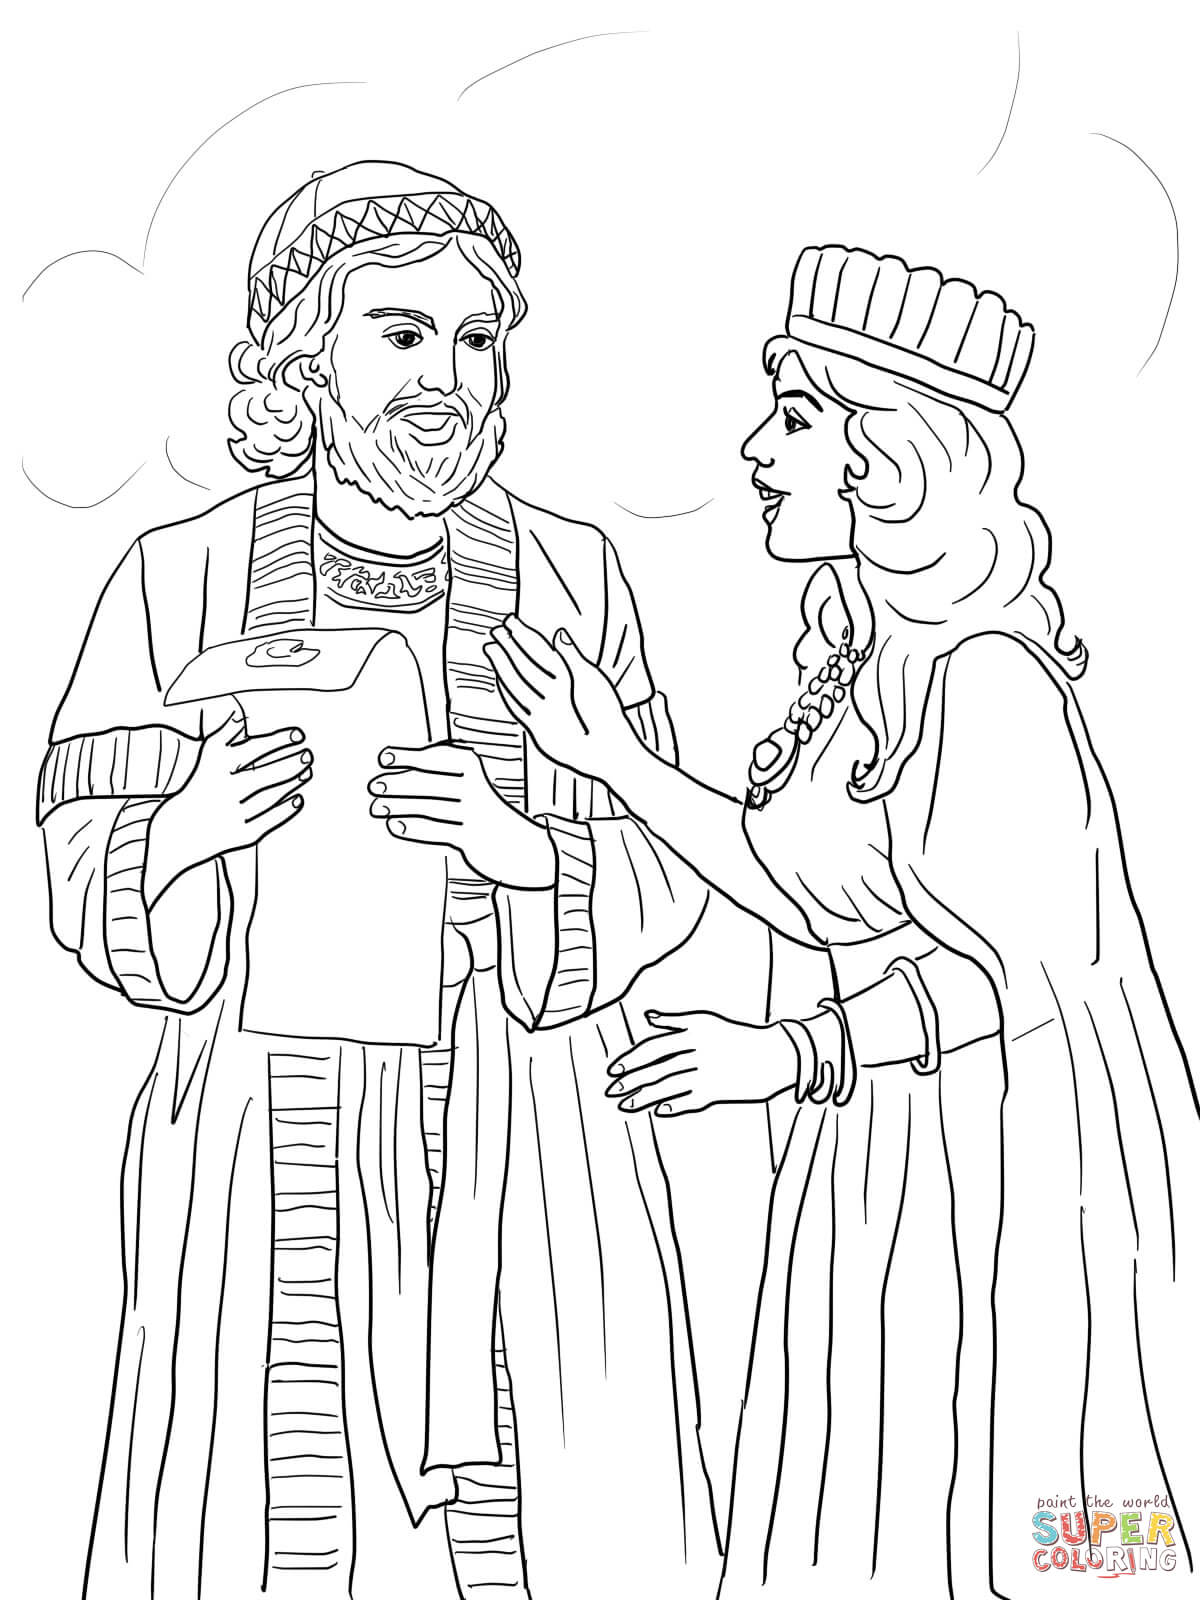 It's just a picture of Decisive queen coloring pages